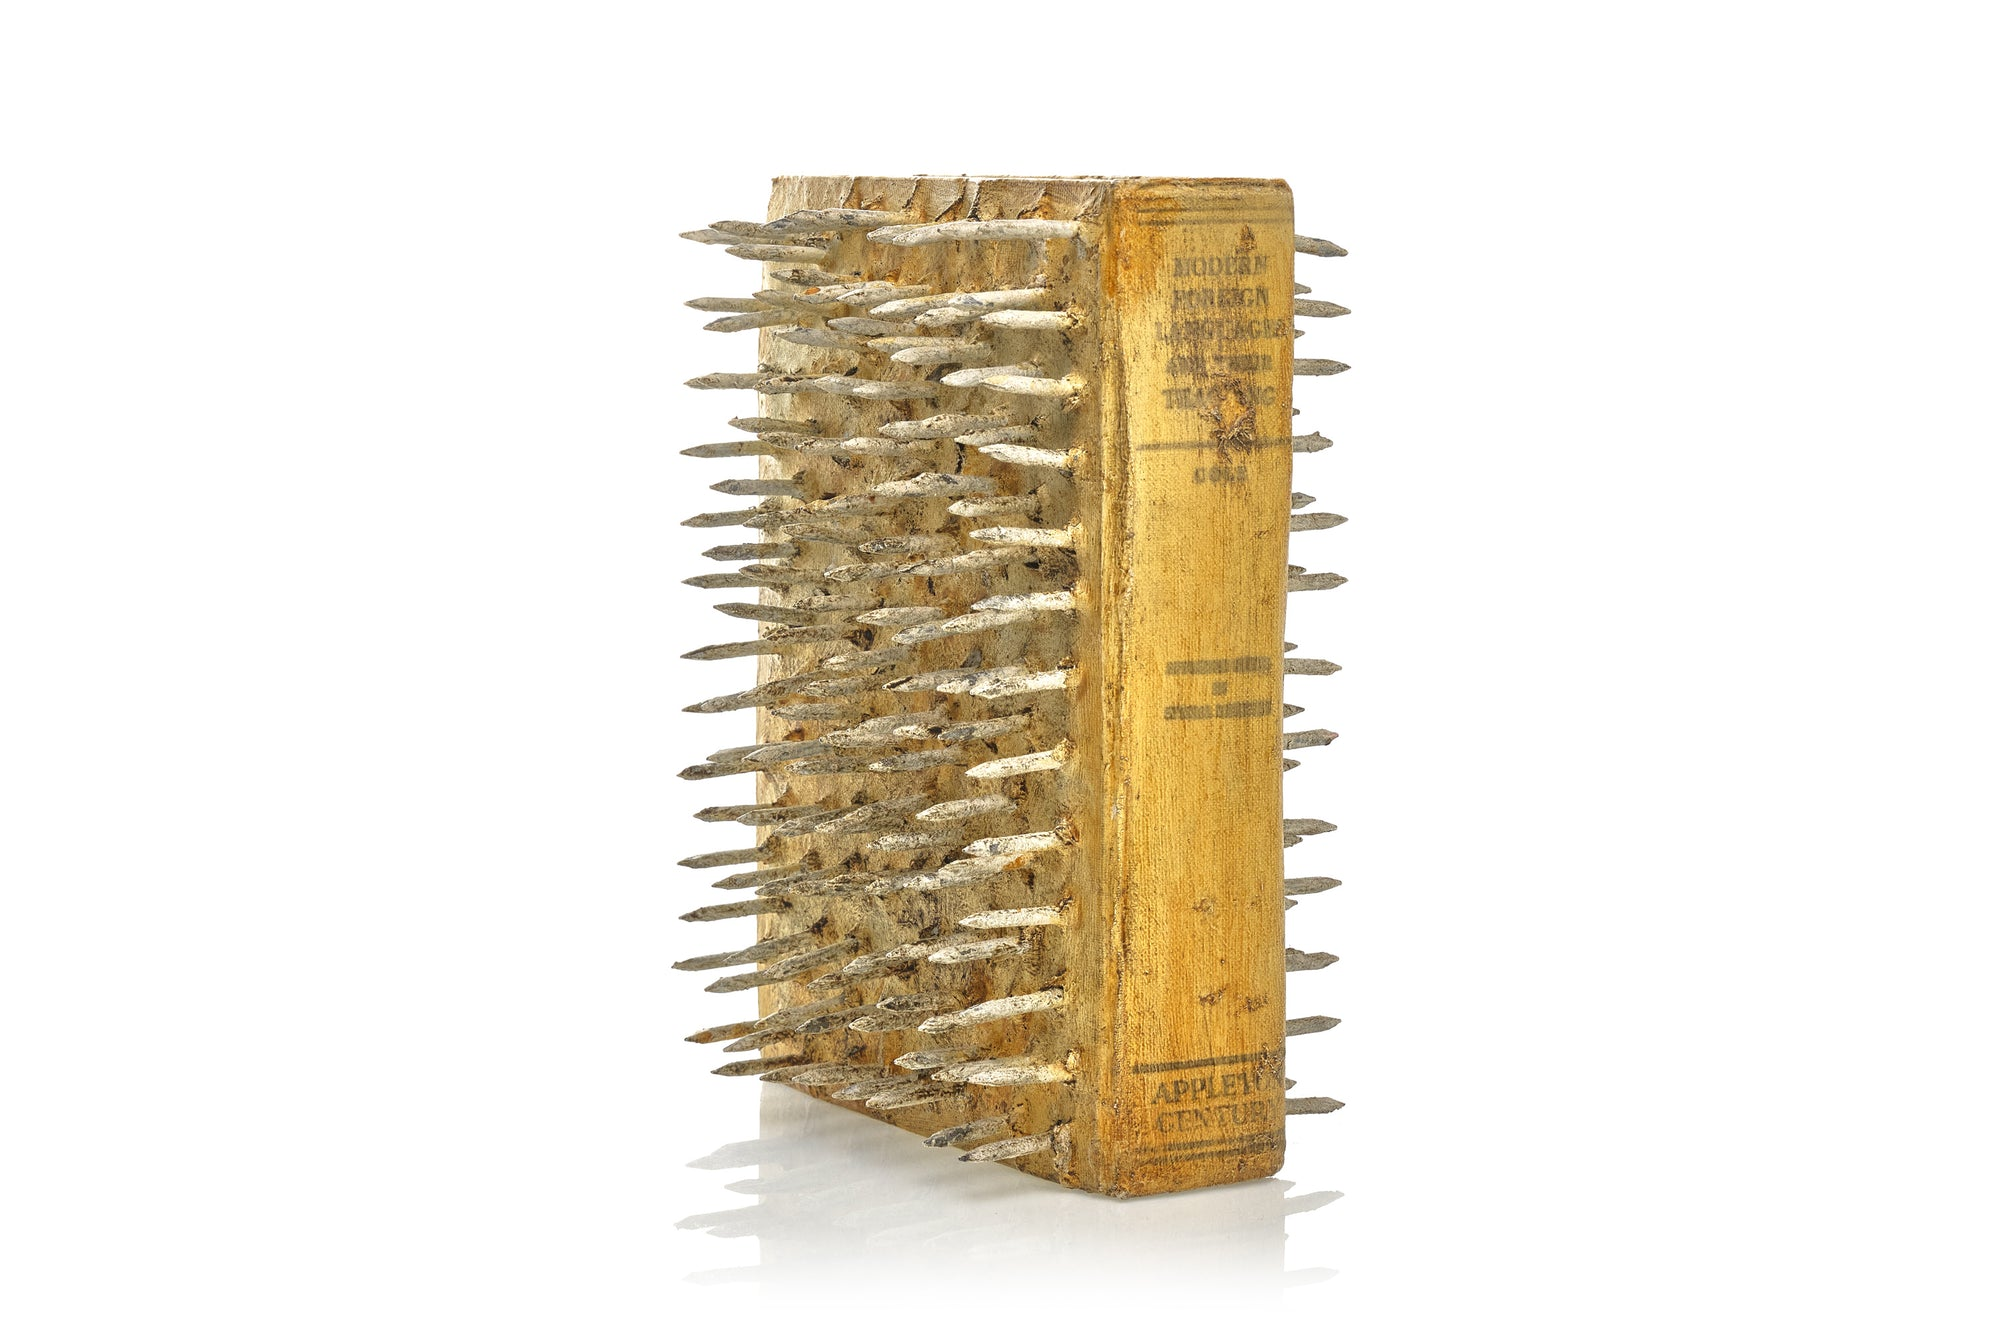 Barton Lidice Benes, Book Sculpture